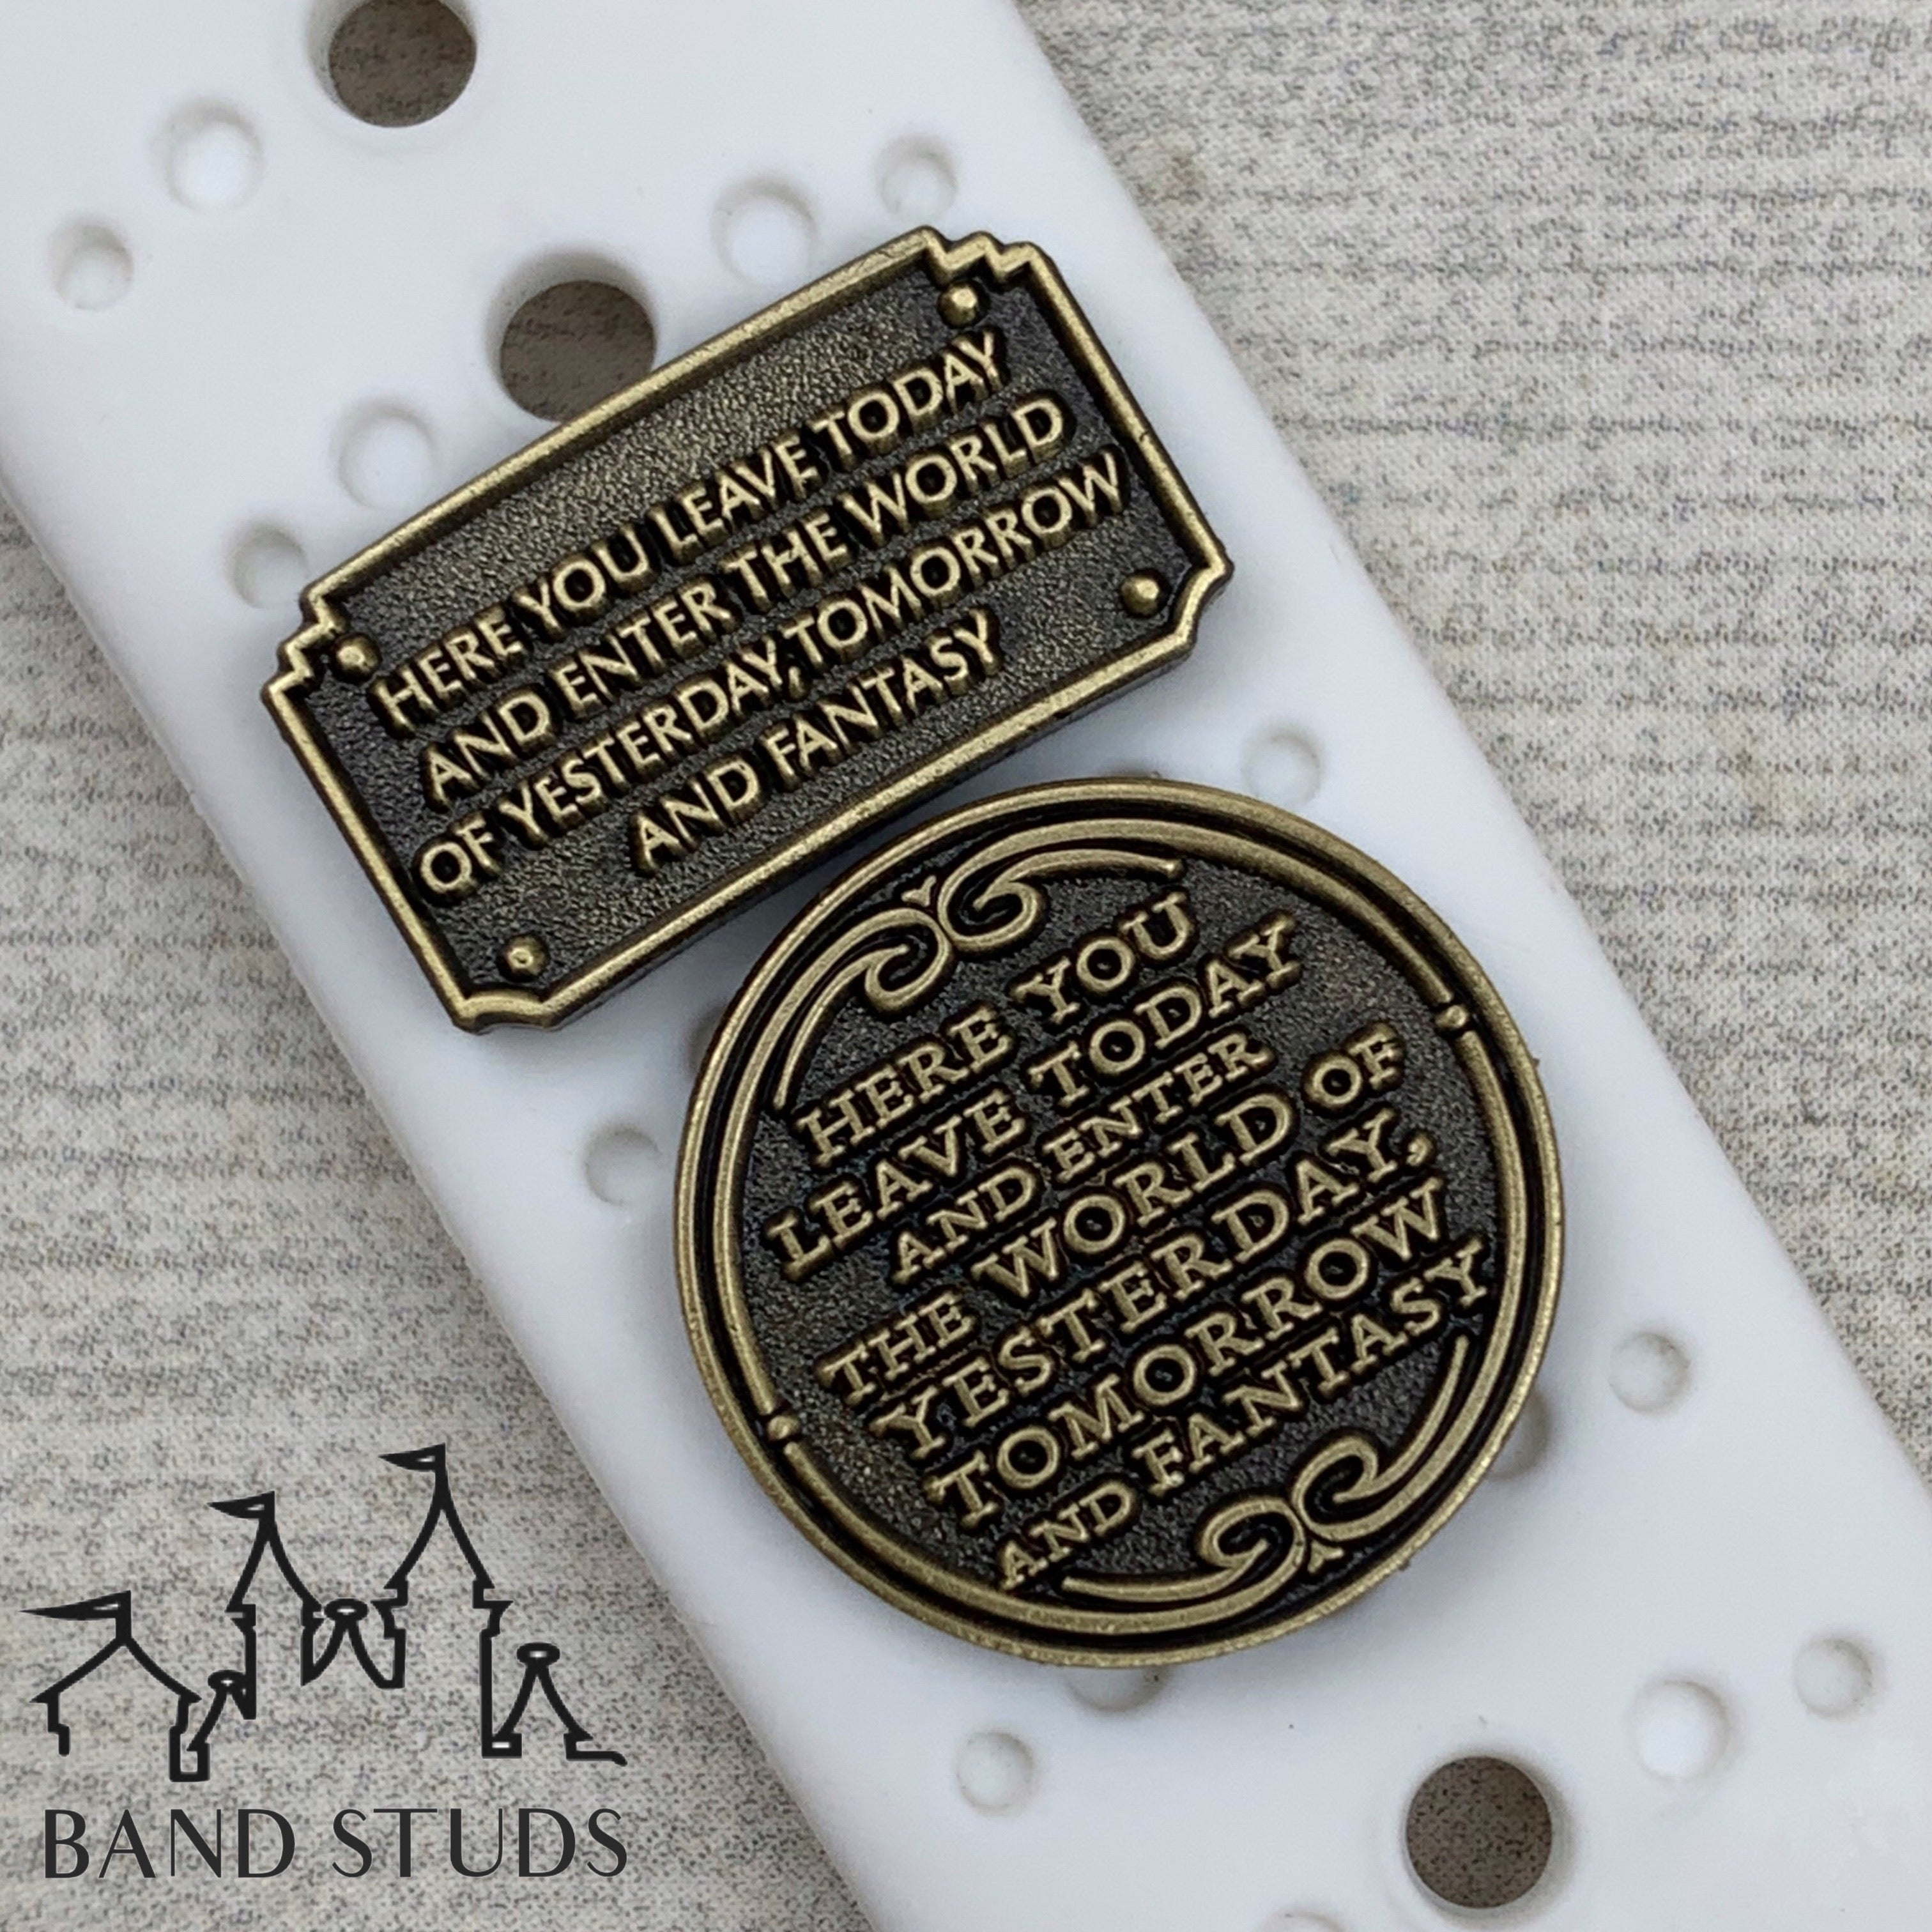 Band Stud - Magical Entrance Plaque  READY TO SHIP